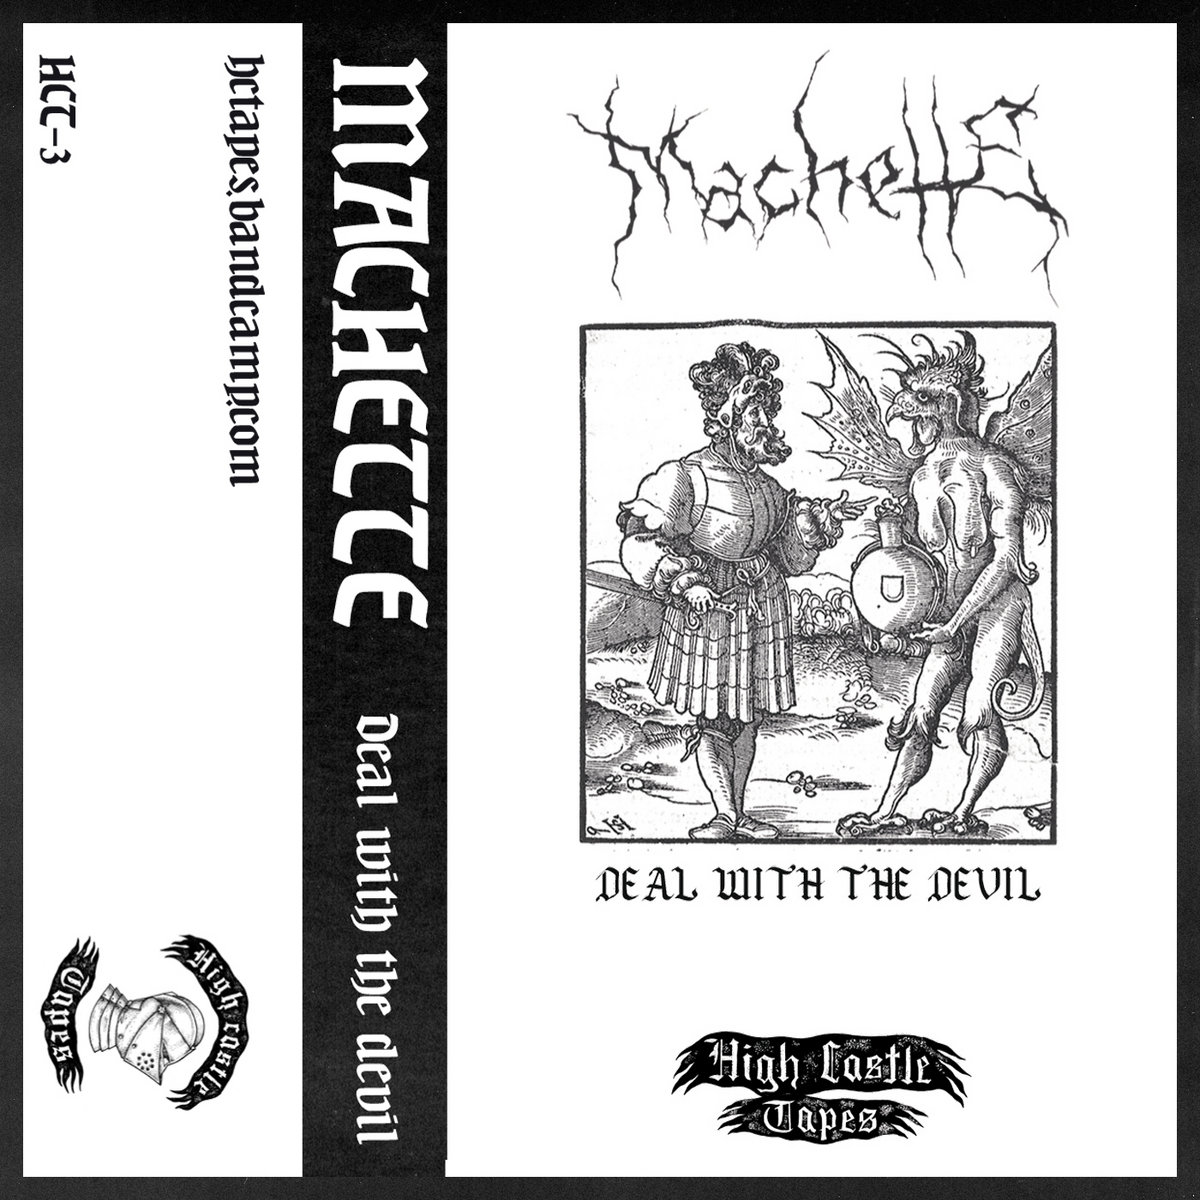 MACHETTE - Deal with the devil | High Castle Tapes